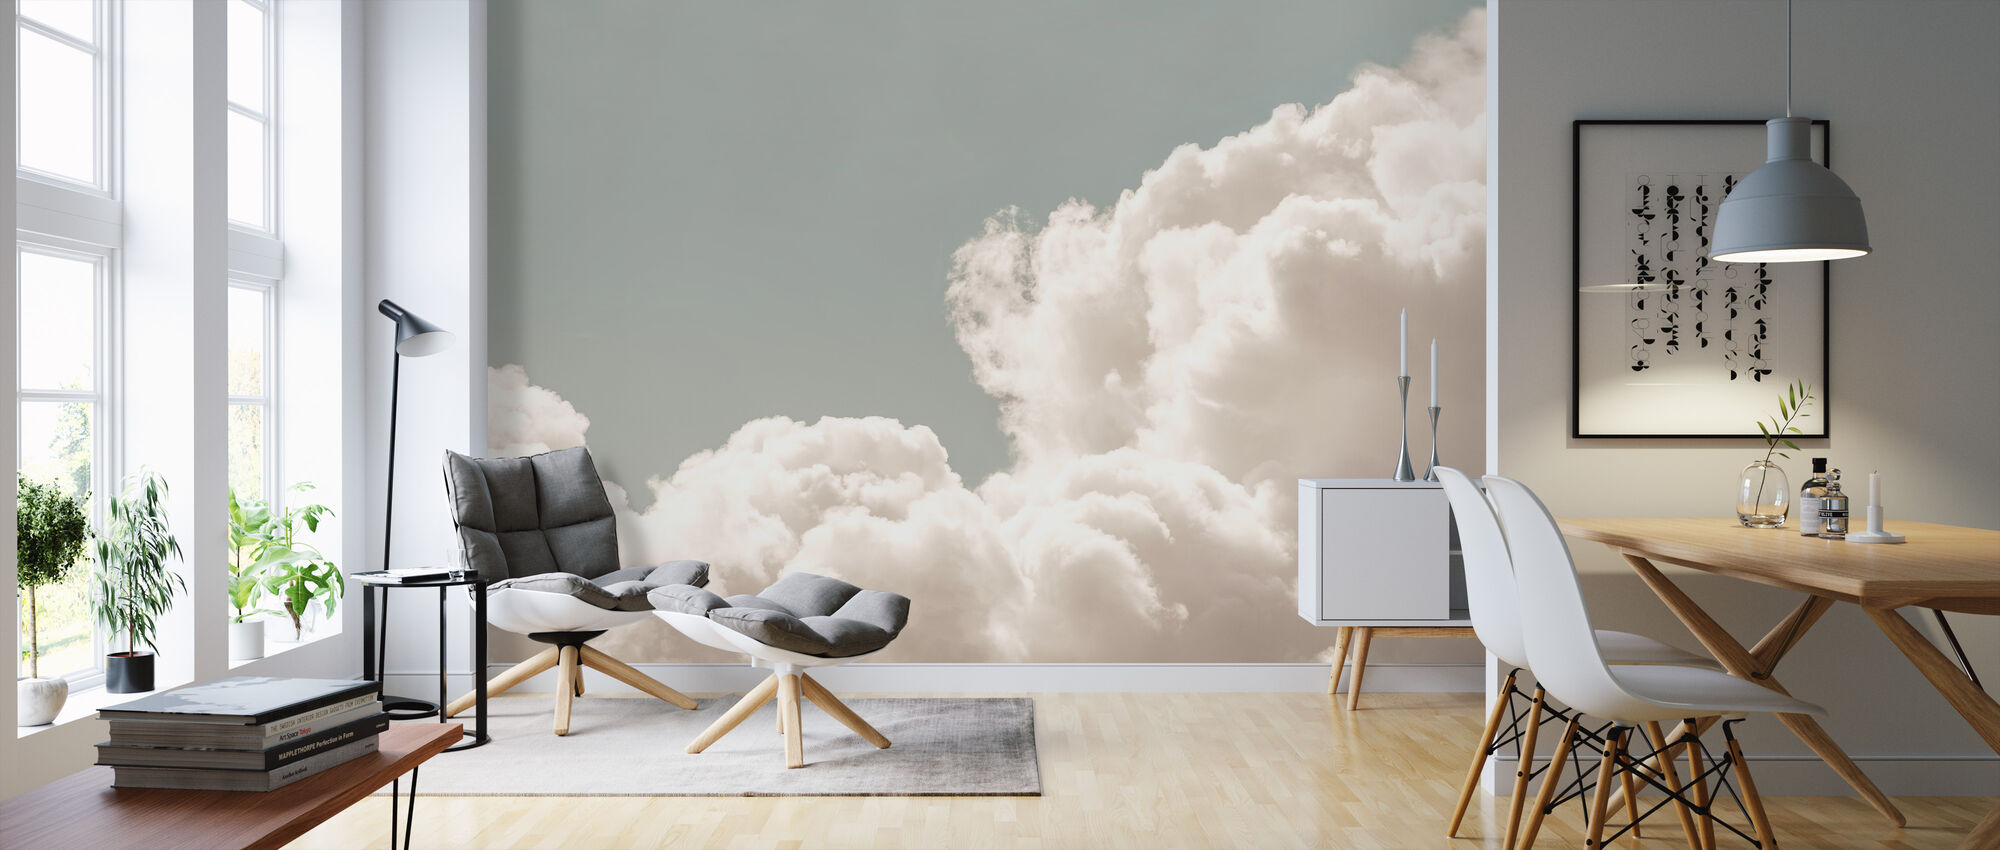 Blush Clouds Daydream - Wallpaper - Living Room